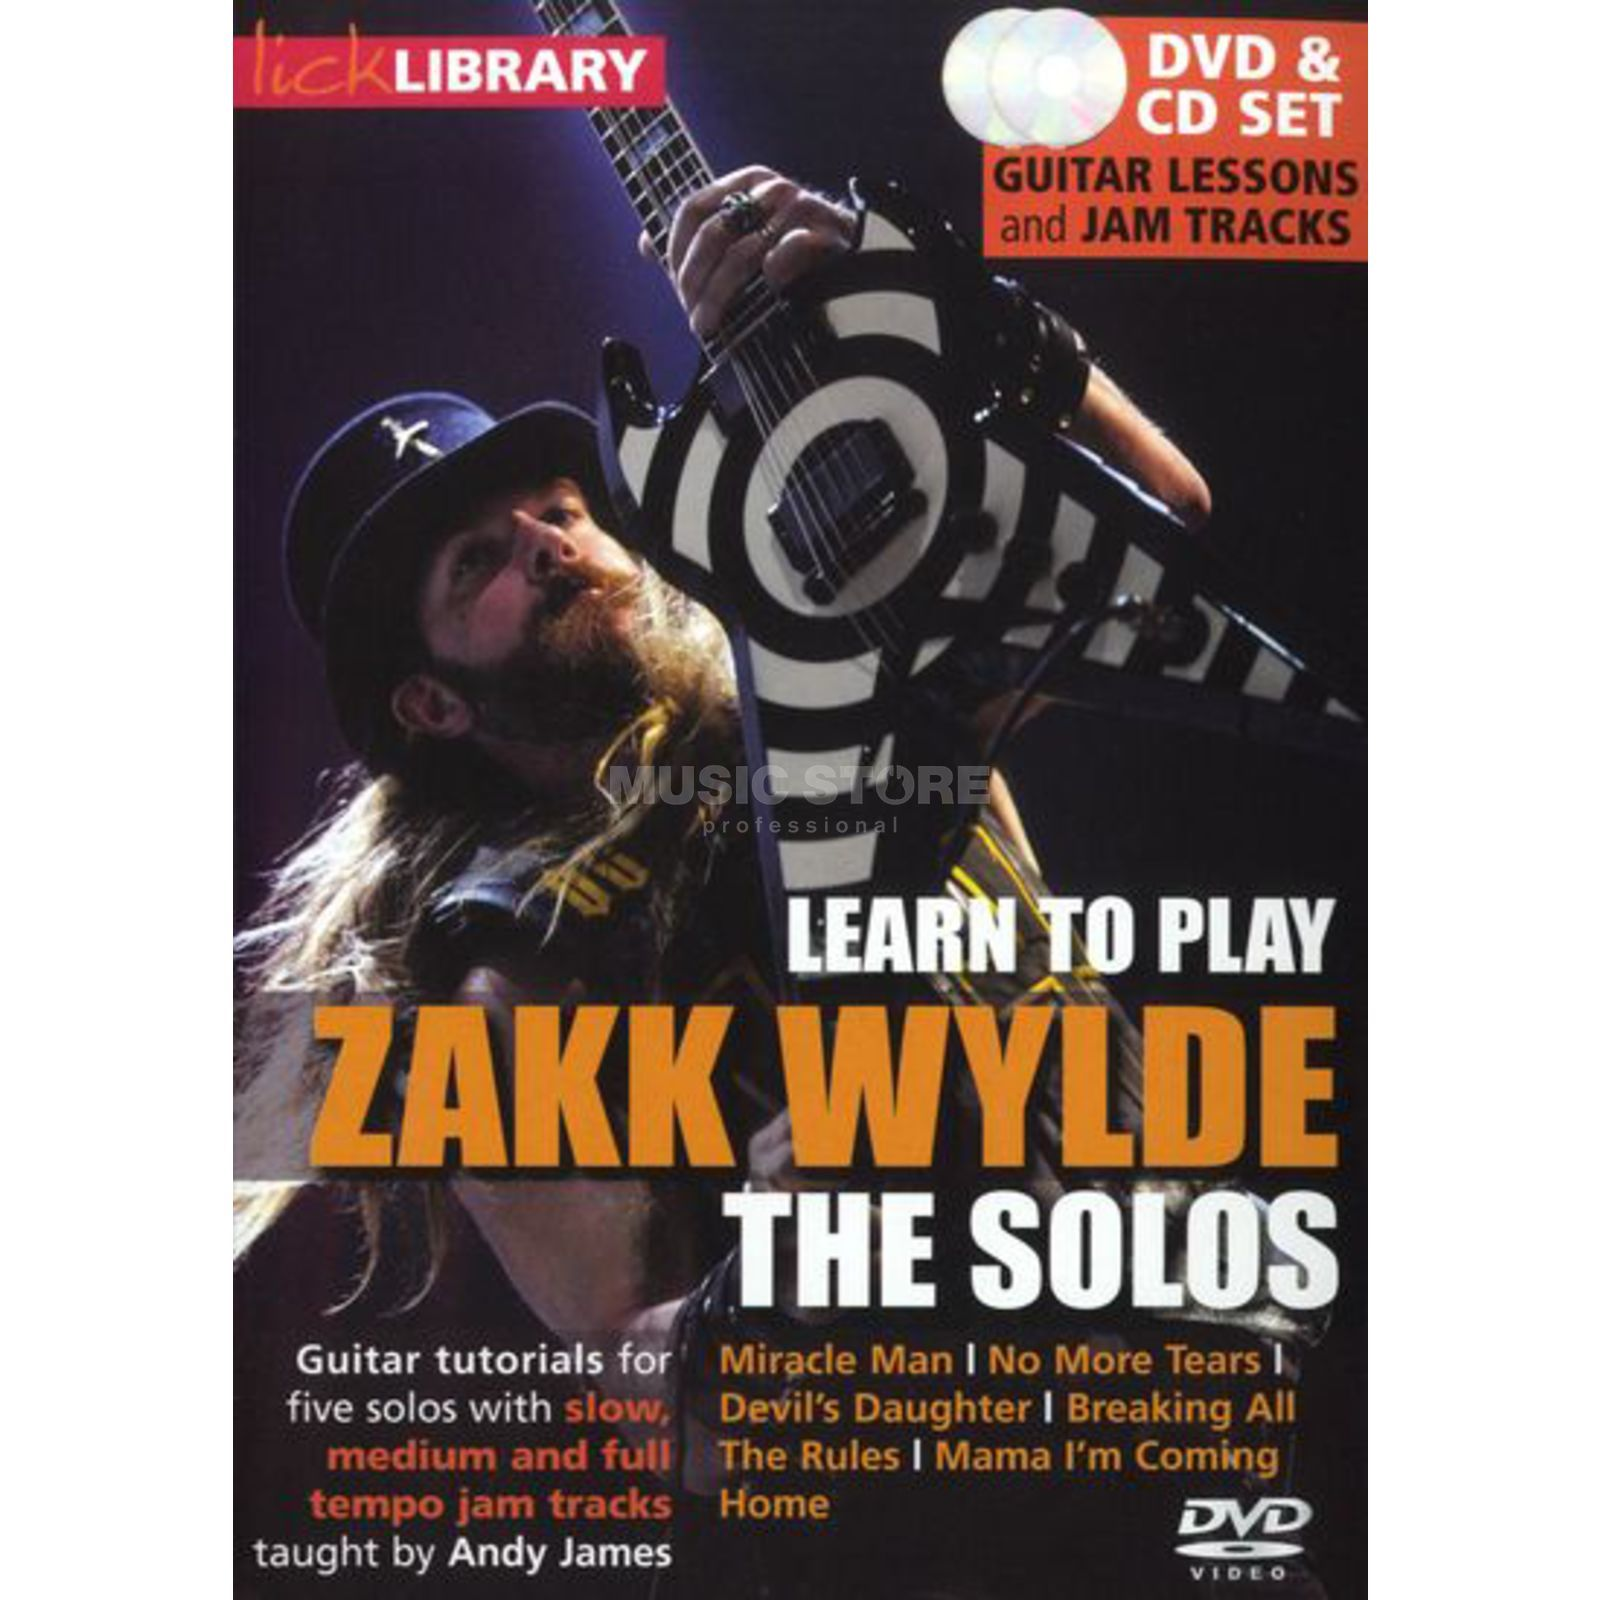 Roadrock International Lick Library: Learn To Play Zakk Wylde - The Solos DVD Produktbillede